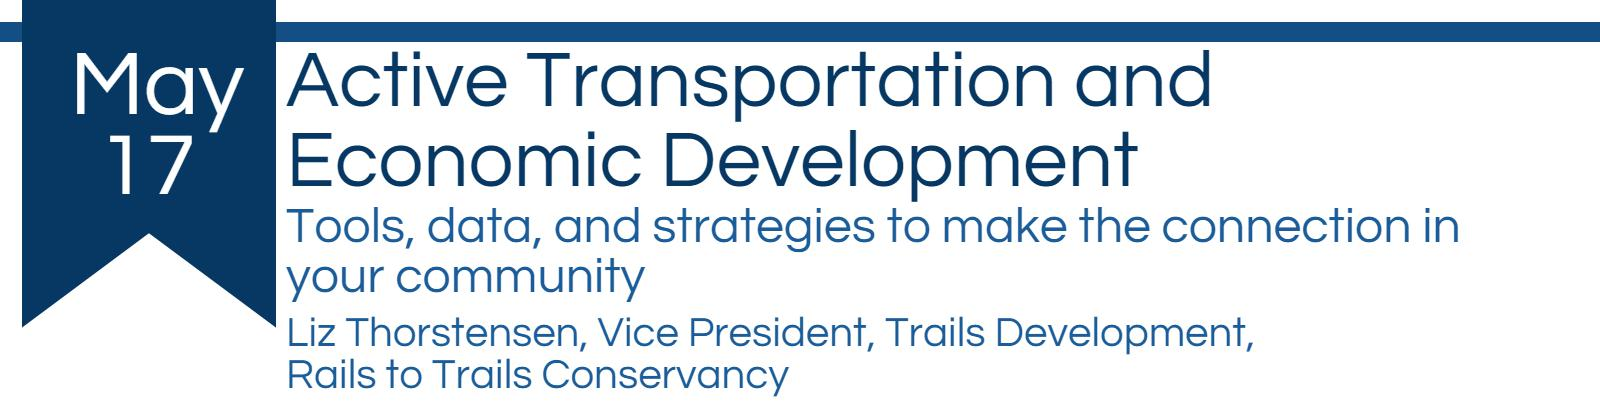 Active Transportation and economic development